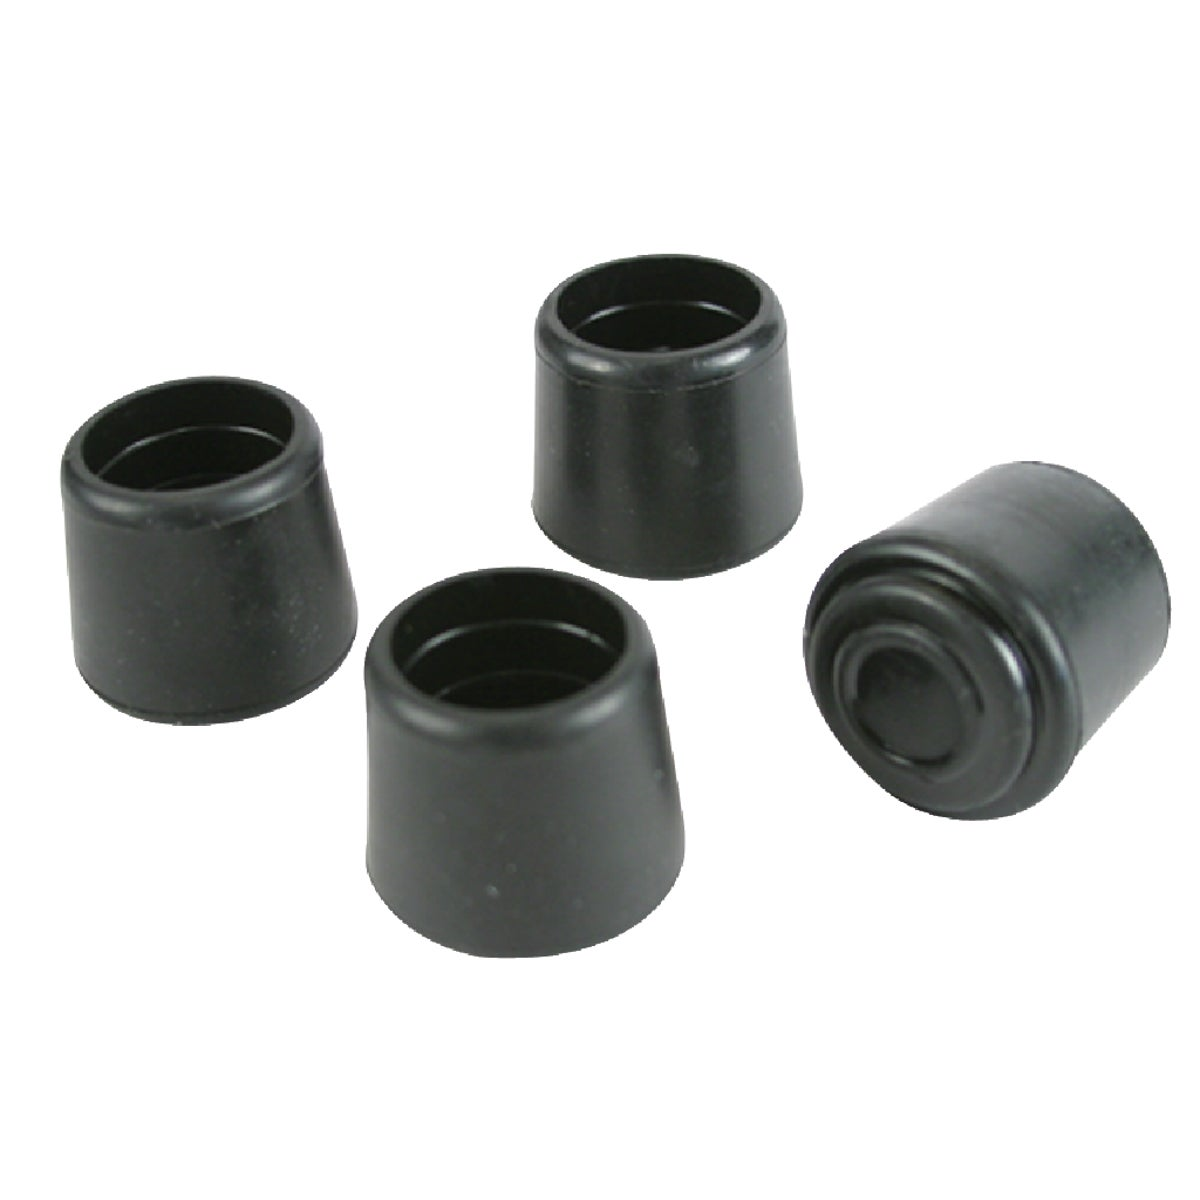 "1"" BLK RUBBER TIPS - 97484 by Magic Sliders"